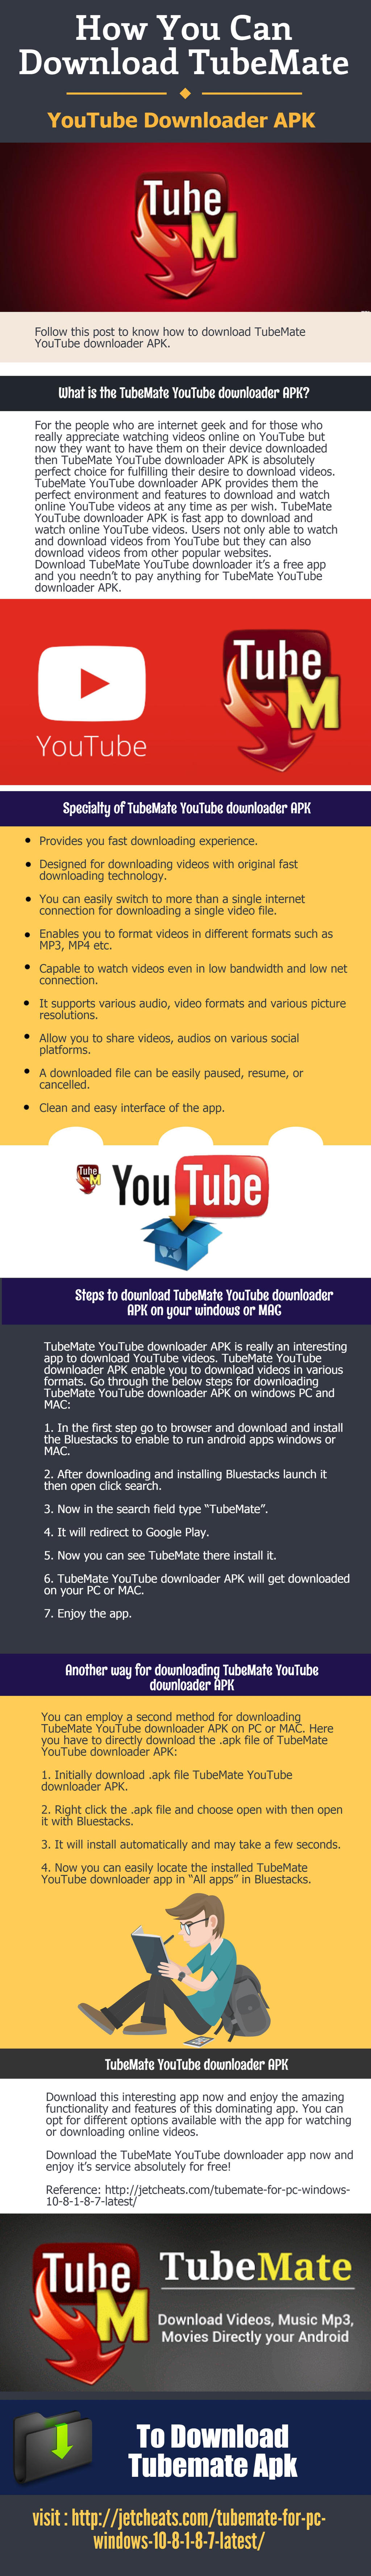 How You Can Download TubeMate YouTube Downloader by